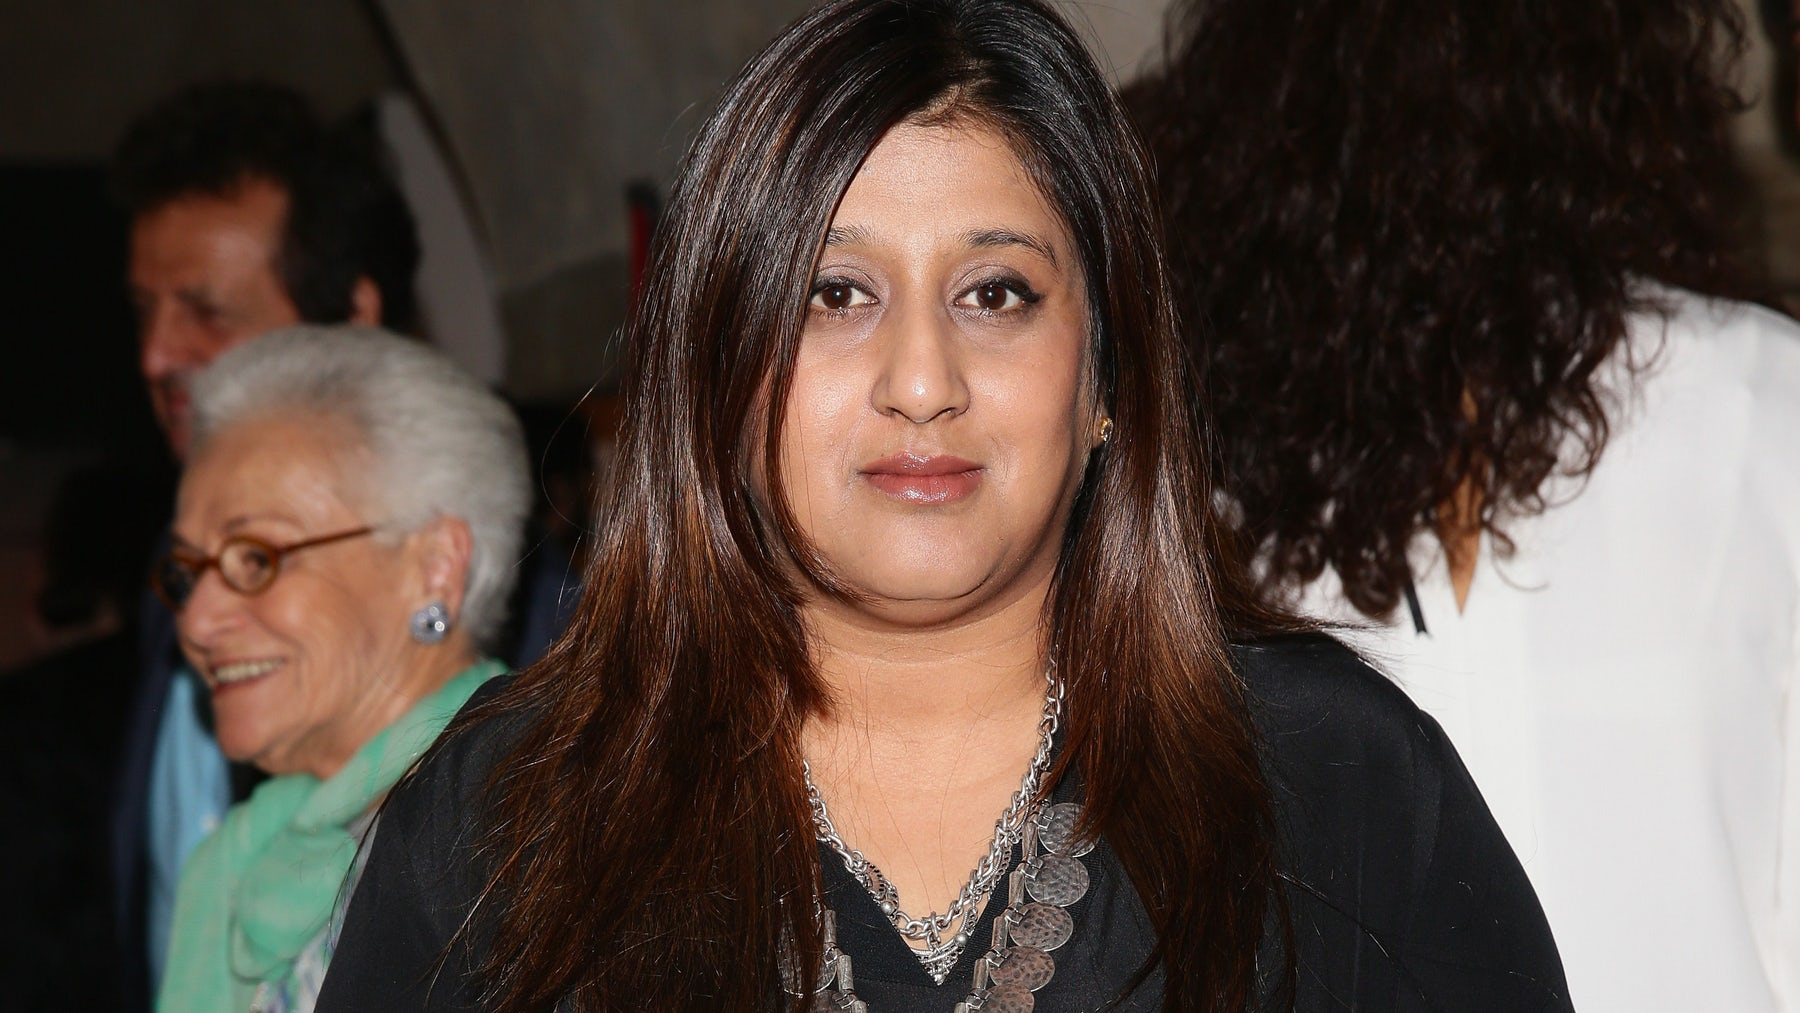 Vogue India's outgoing editor Priya Tanna. Getty Images